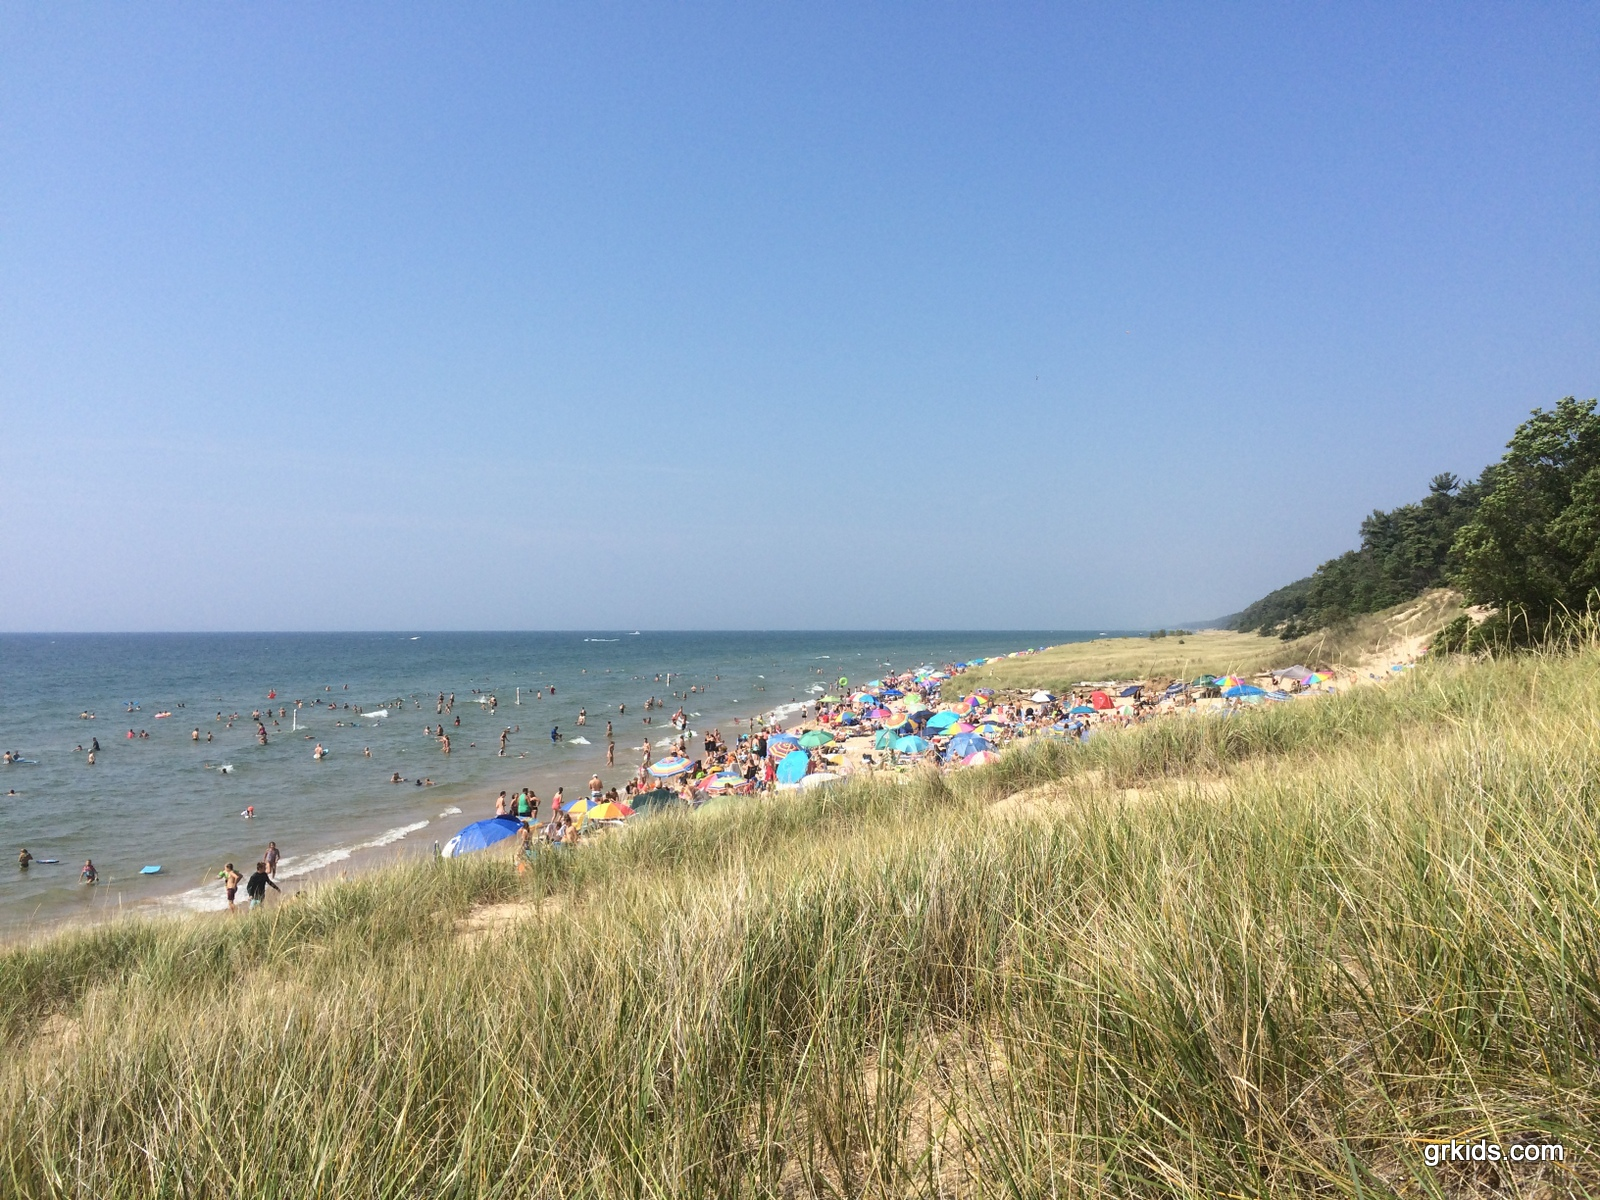 Lake Michigan beaches: hoffmaster state park